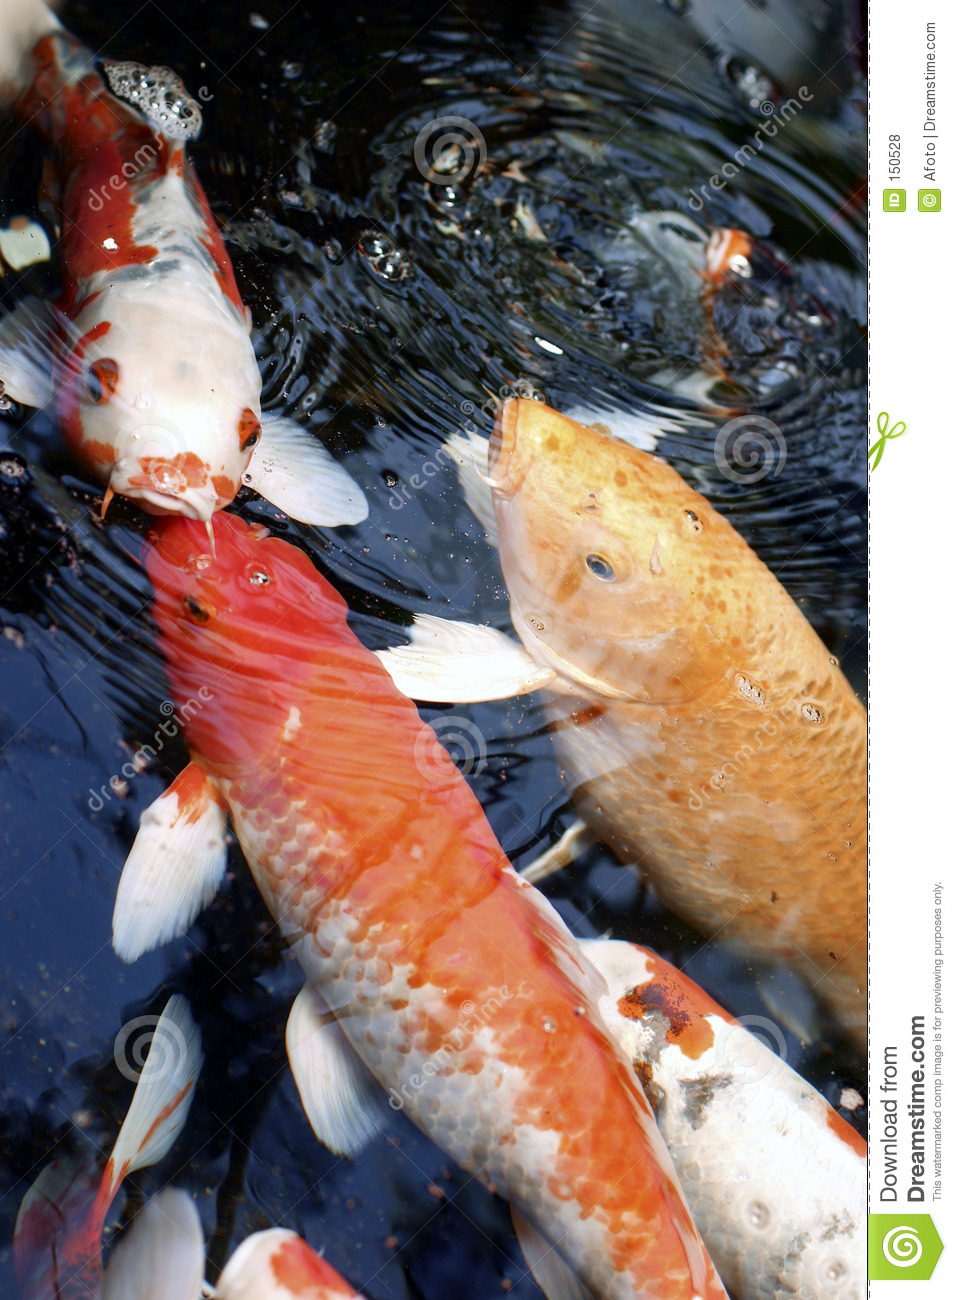 Koi feeding royalty free stock photos image 150528 for Koi feeding